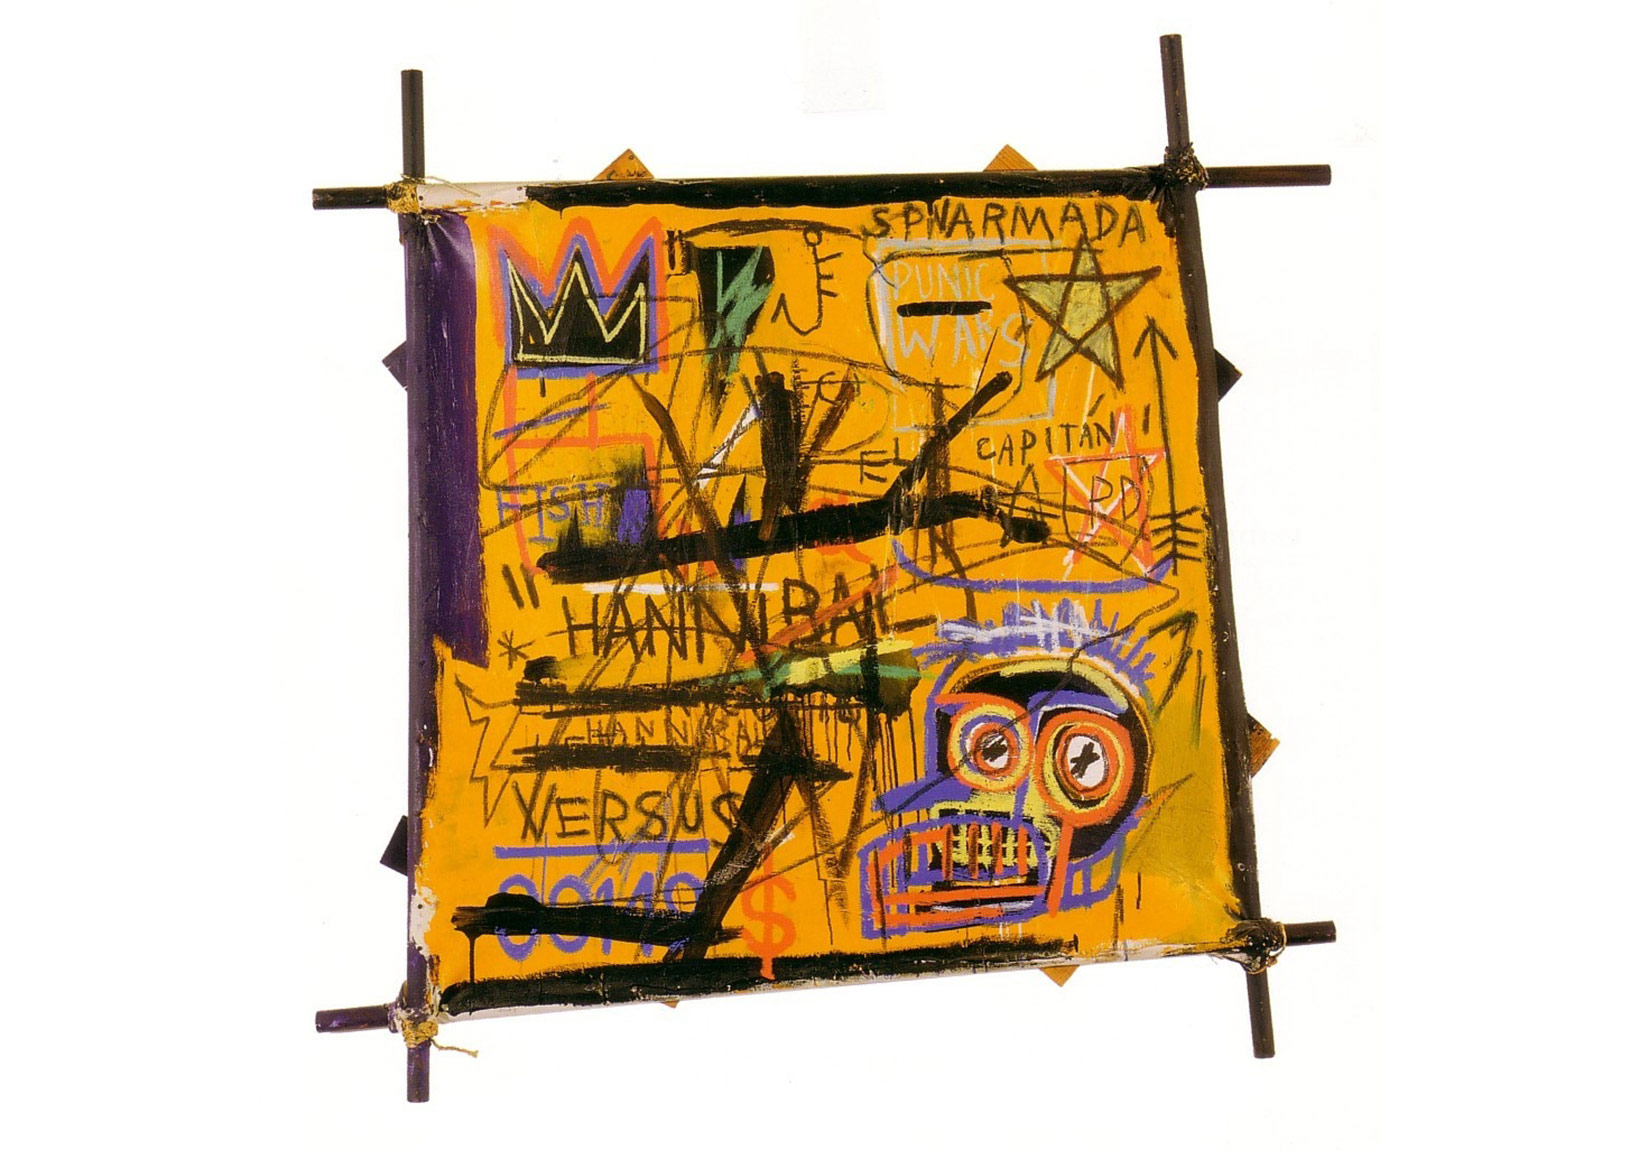 Basquiat: http://www.nytimes.com/2013/05/13/arts/design/art-proves-attractive-refuge-for-money-launderers.html?pagewanted=all (via U.S. Attorney's Office/Southern District of New York)